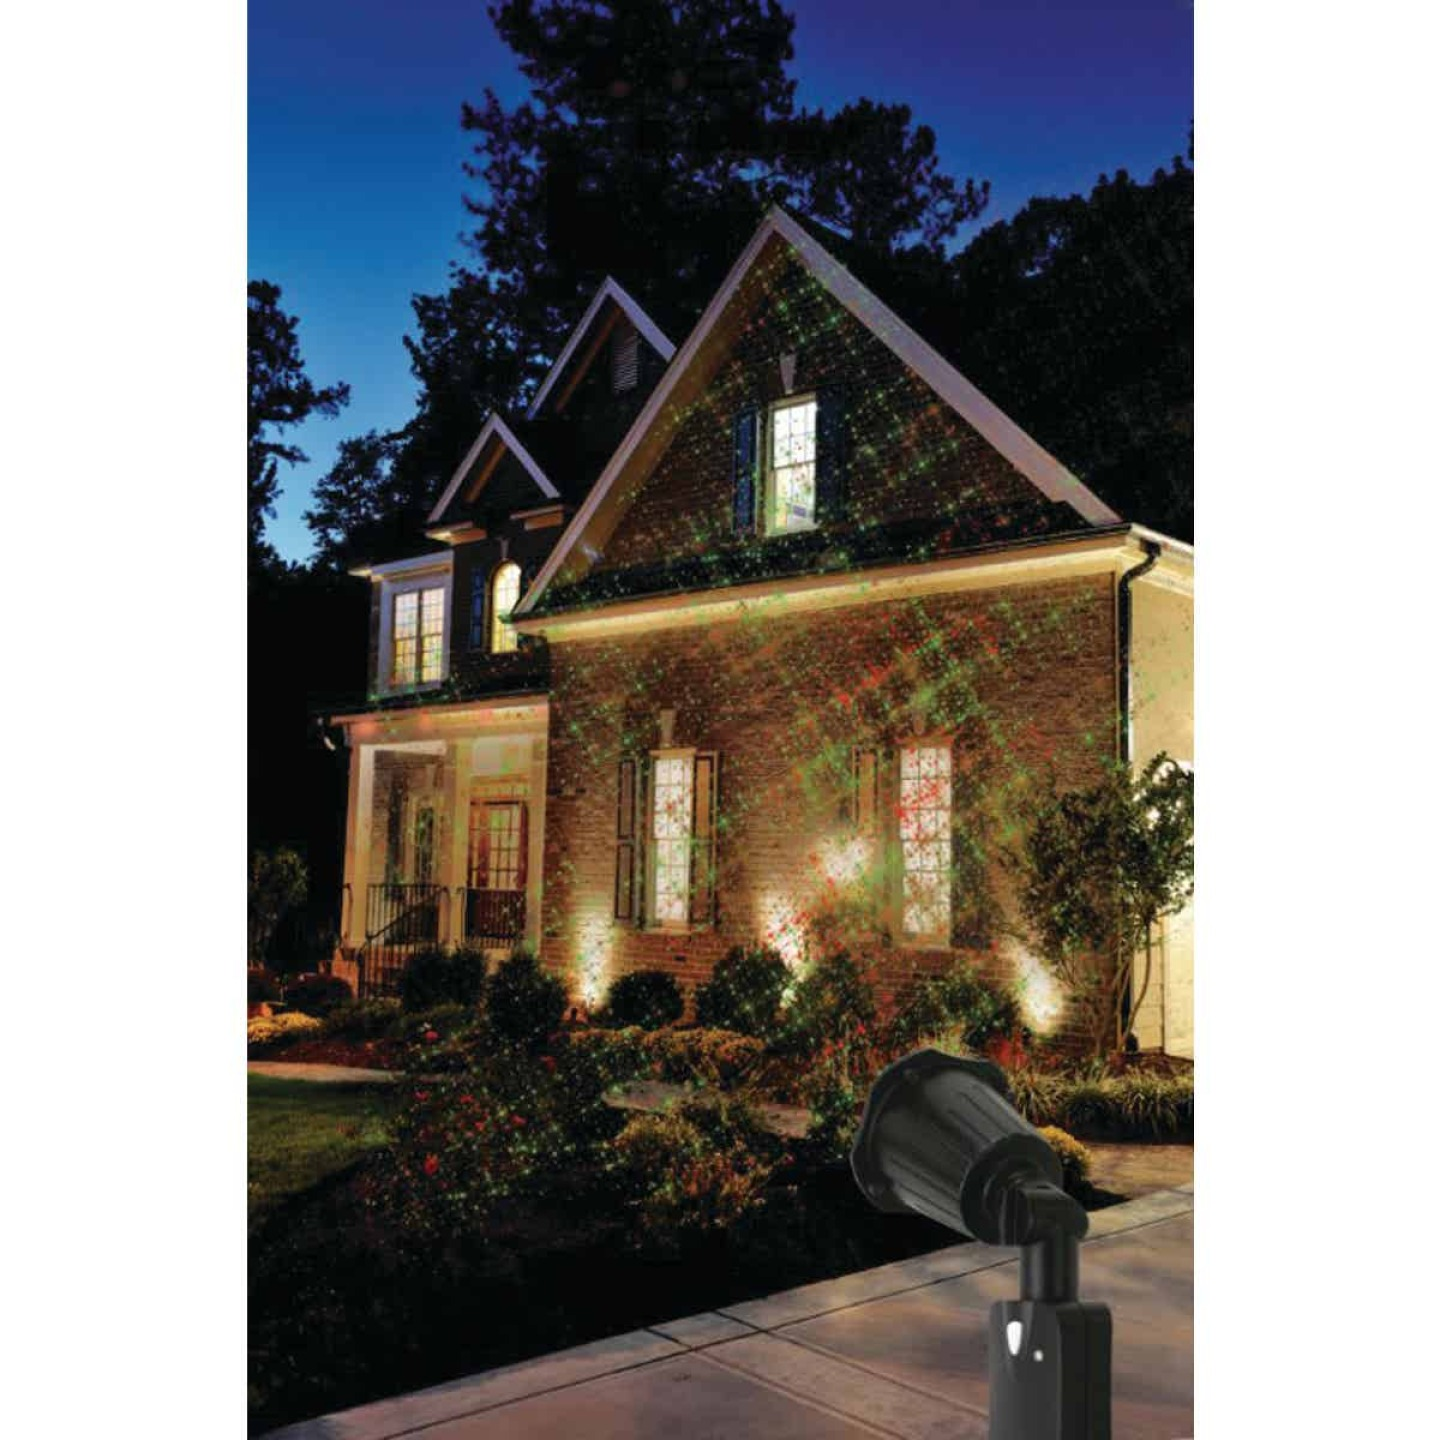 Prime Wire & Cable LED 5W Holiday Laser Light Projector Image 2